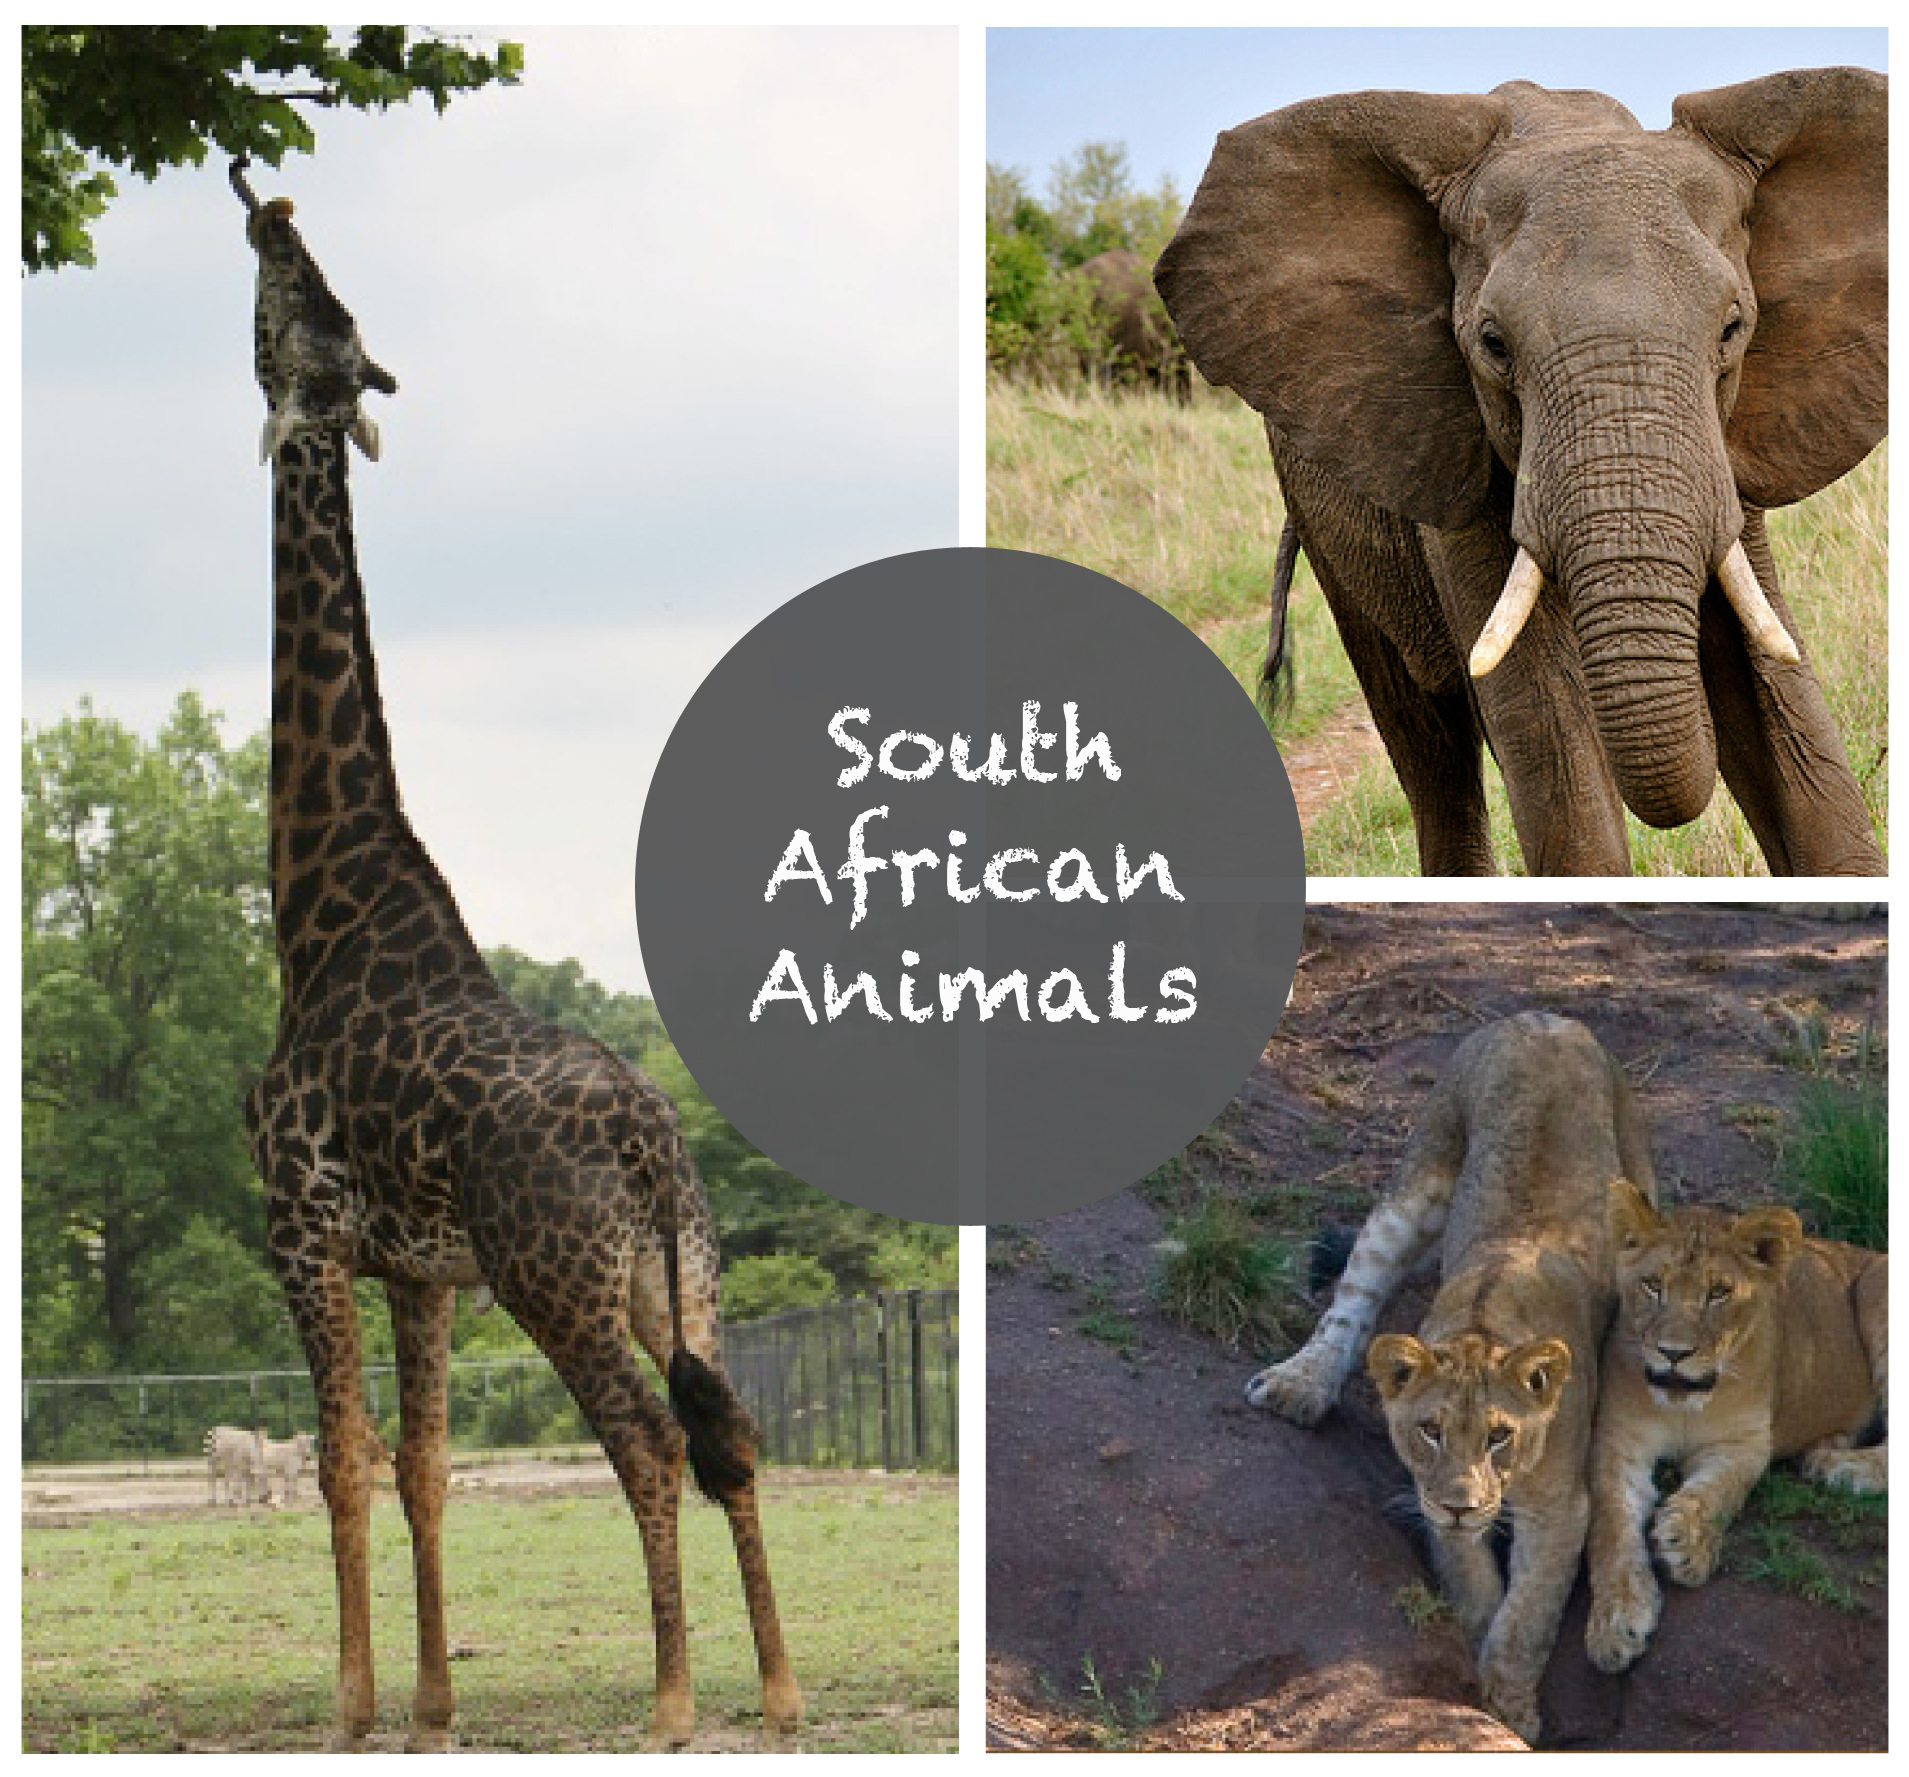 Tea Collection :: South African Animals in US Zoos